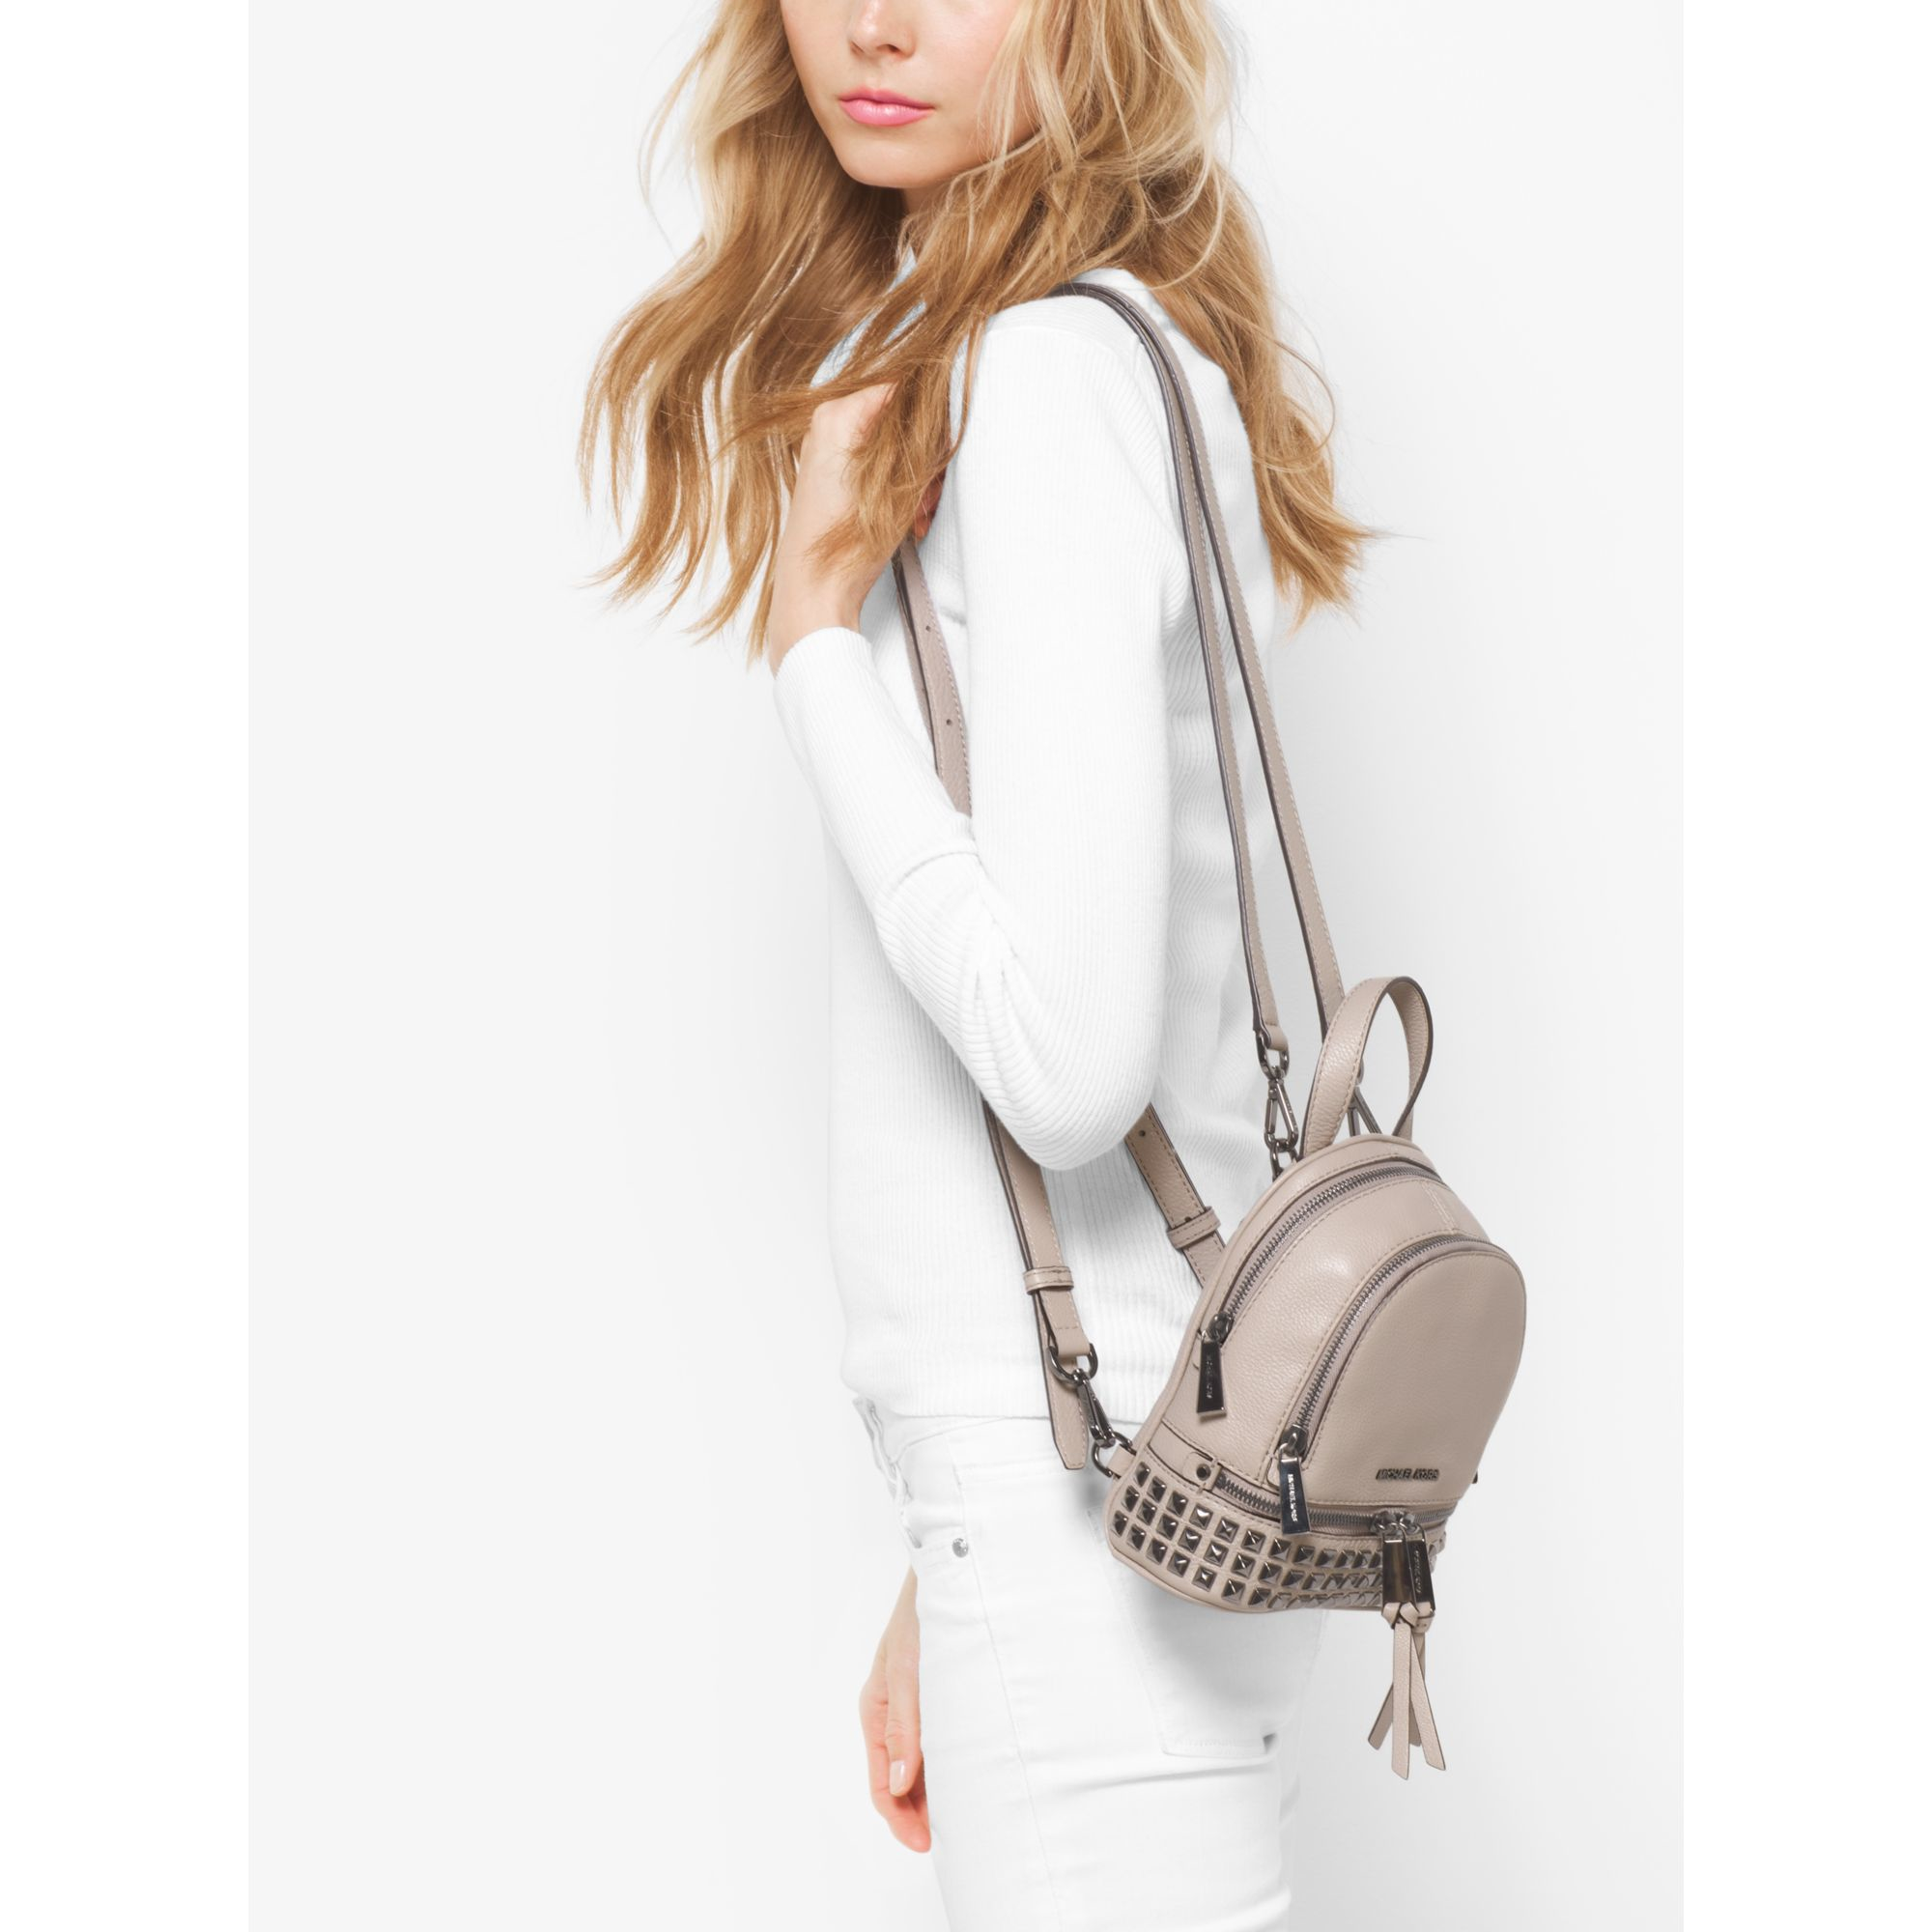 230d6e750476 ... italy backpack lyst michael kors rhea extra small studded leather  backpac 65fb1 0c5c0